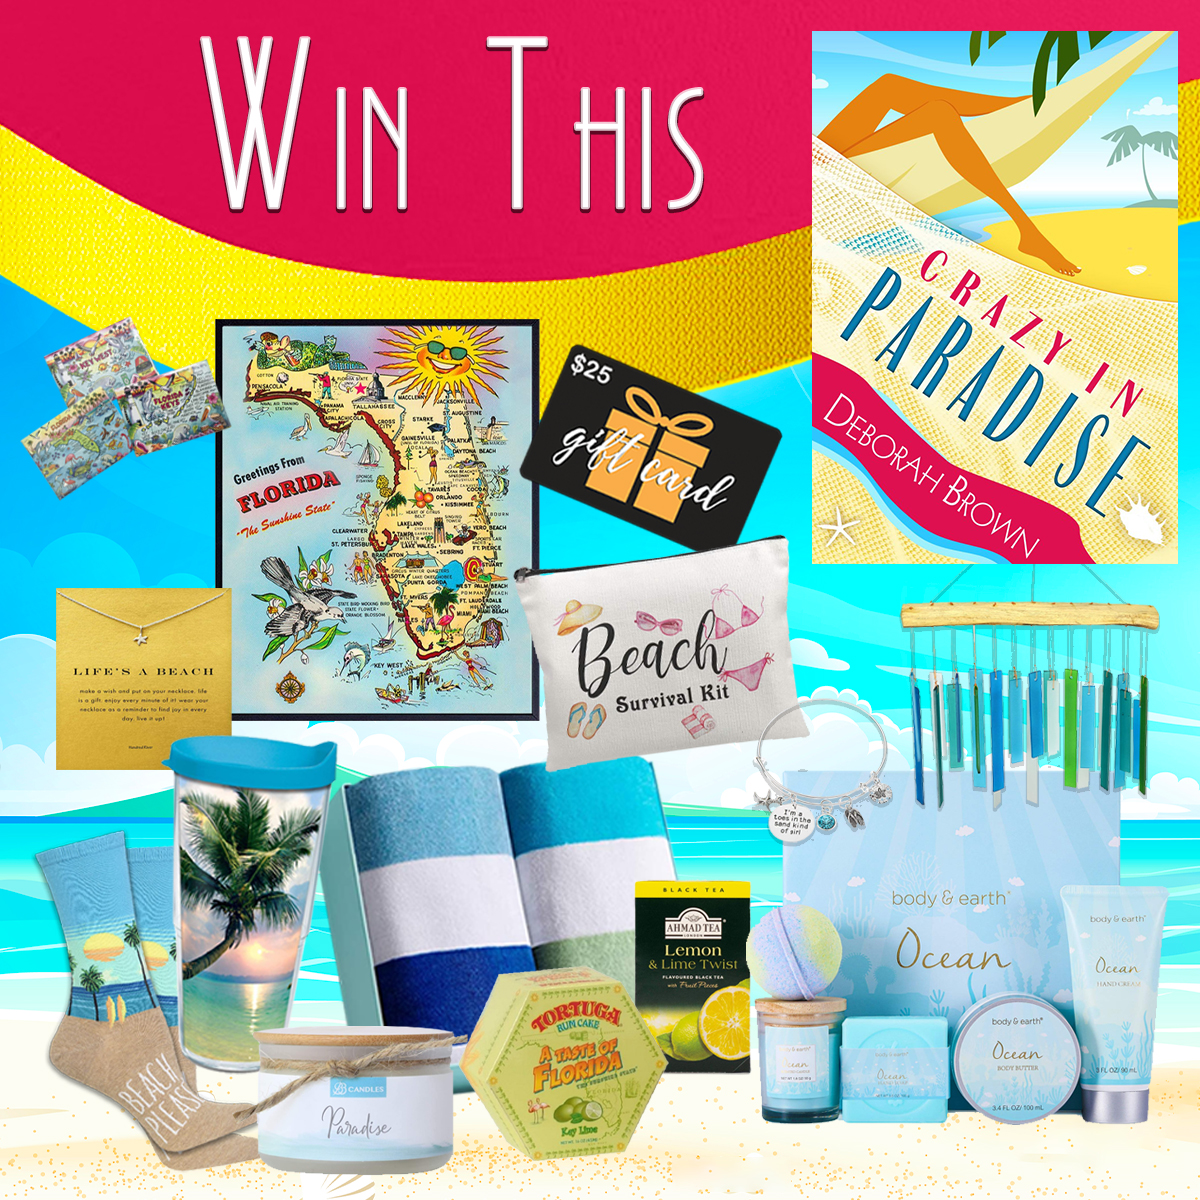 Ener to win a paradise prize pack from bestselling author Deborah Brown!